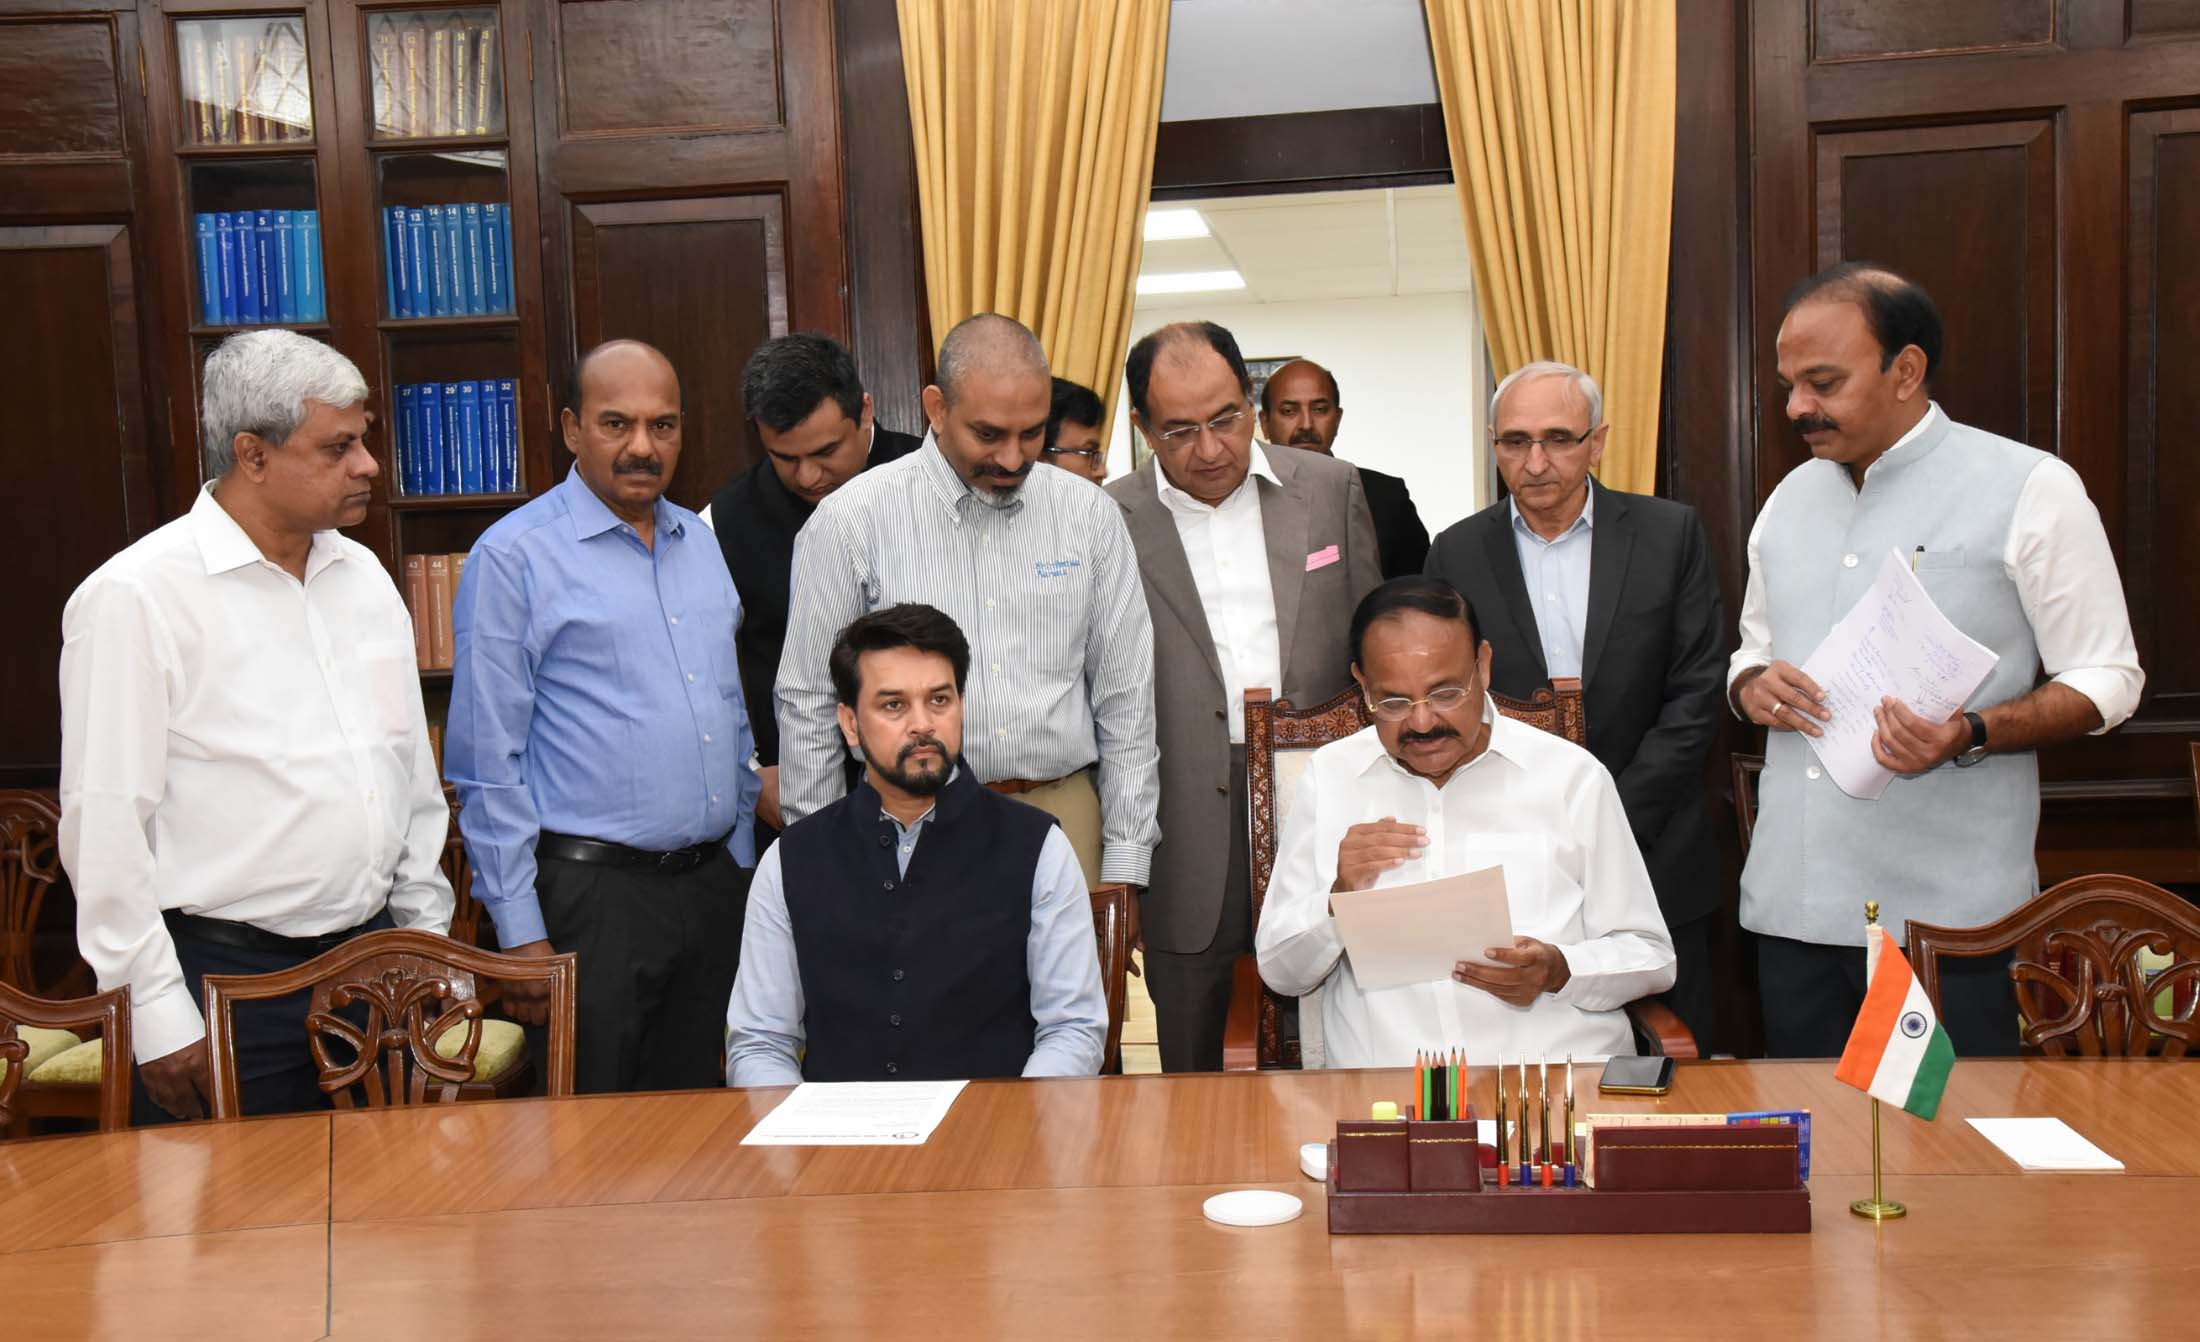 A Delegation of the All India Poultry Breeders Association calling on the Vice President, Shri M. Venkaiah Naidu in New Delhi on March 13, 2020.